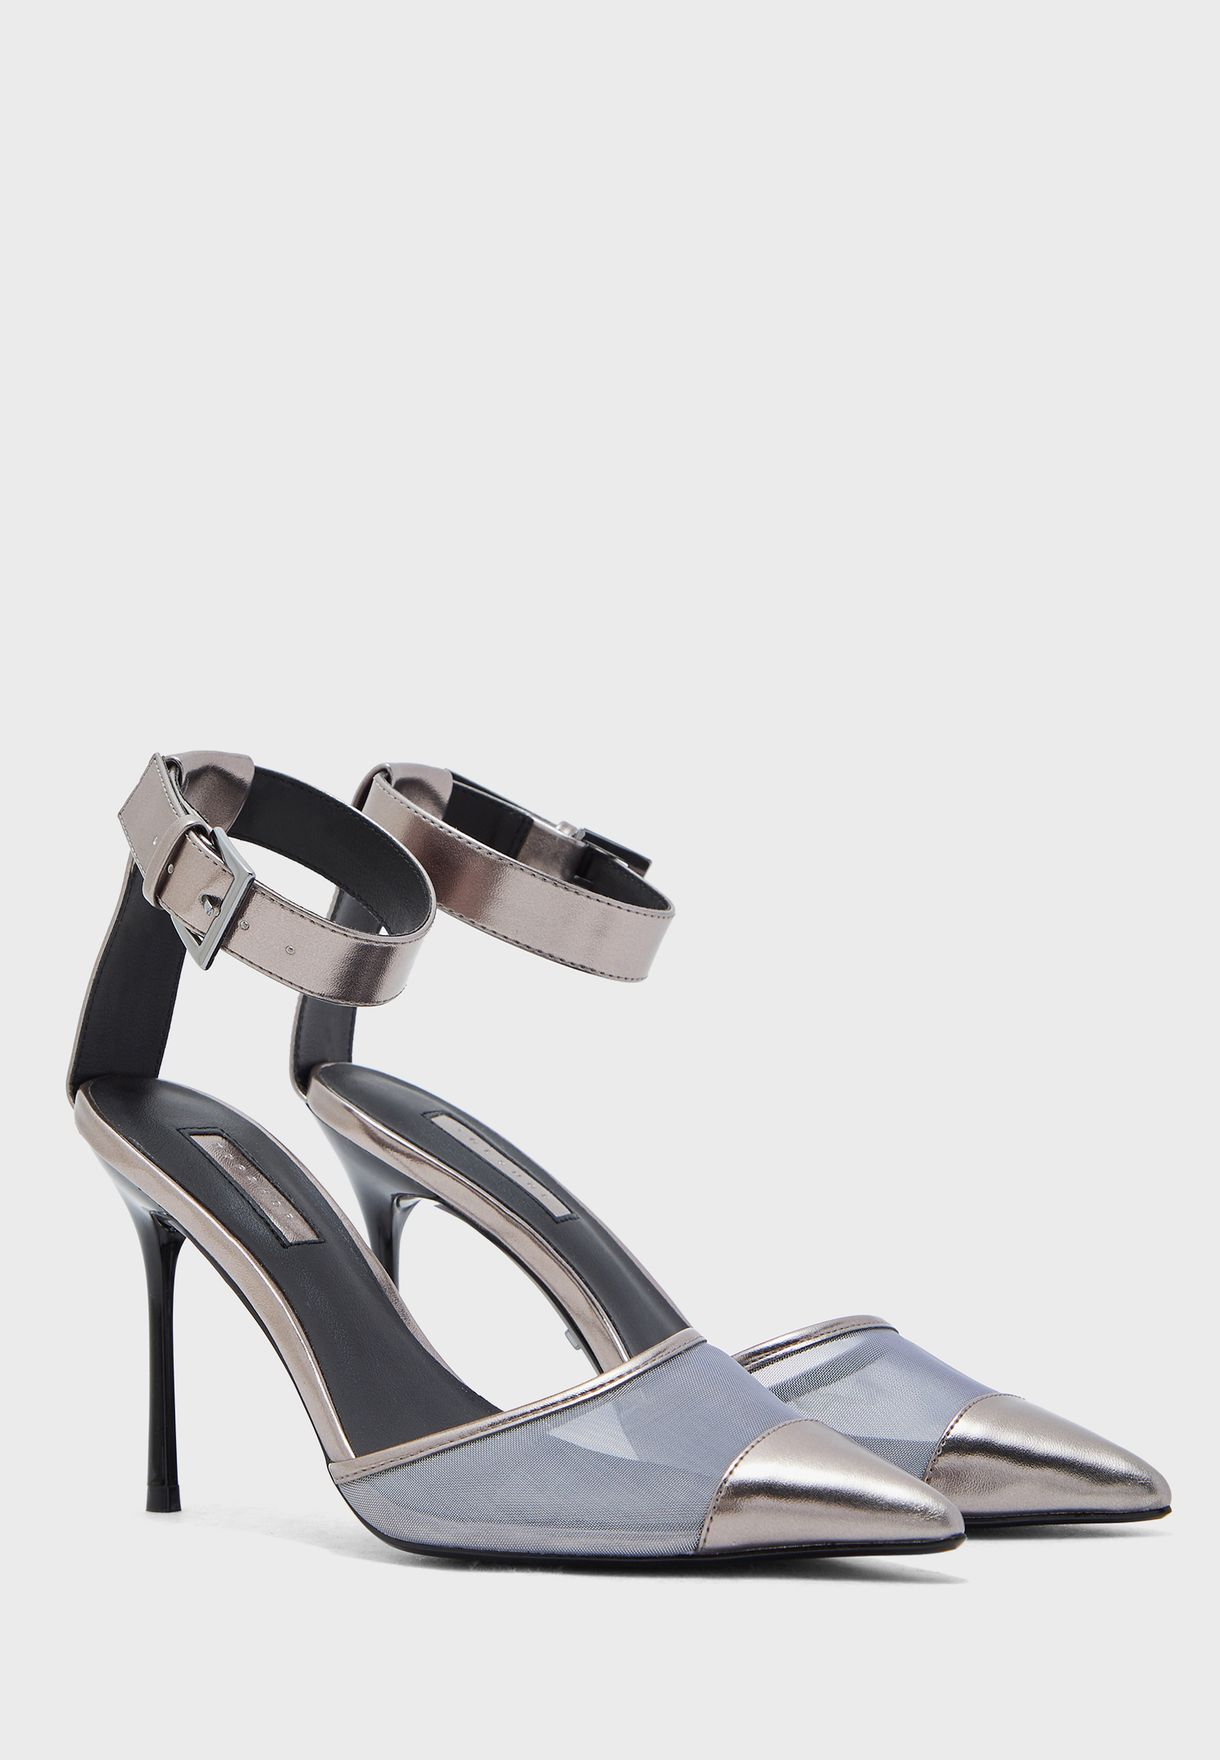 Topshop Ankle Strap High Heel Pump - Brand Shoes